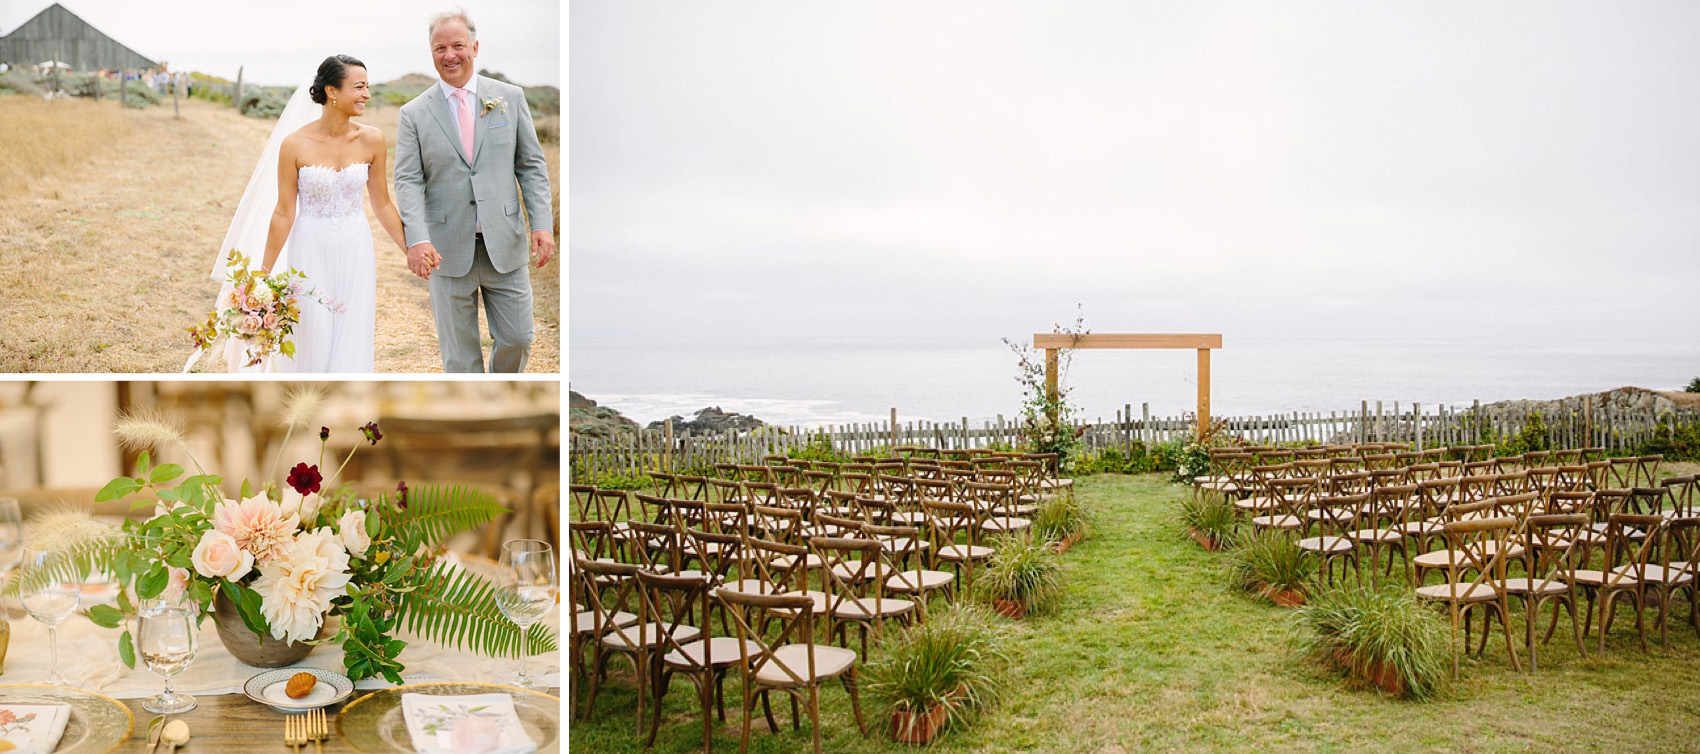 Dream A Little Dream Events | San Francisco Wedding and Event Planning and Design